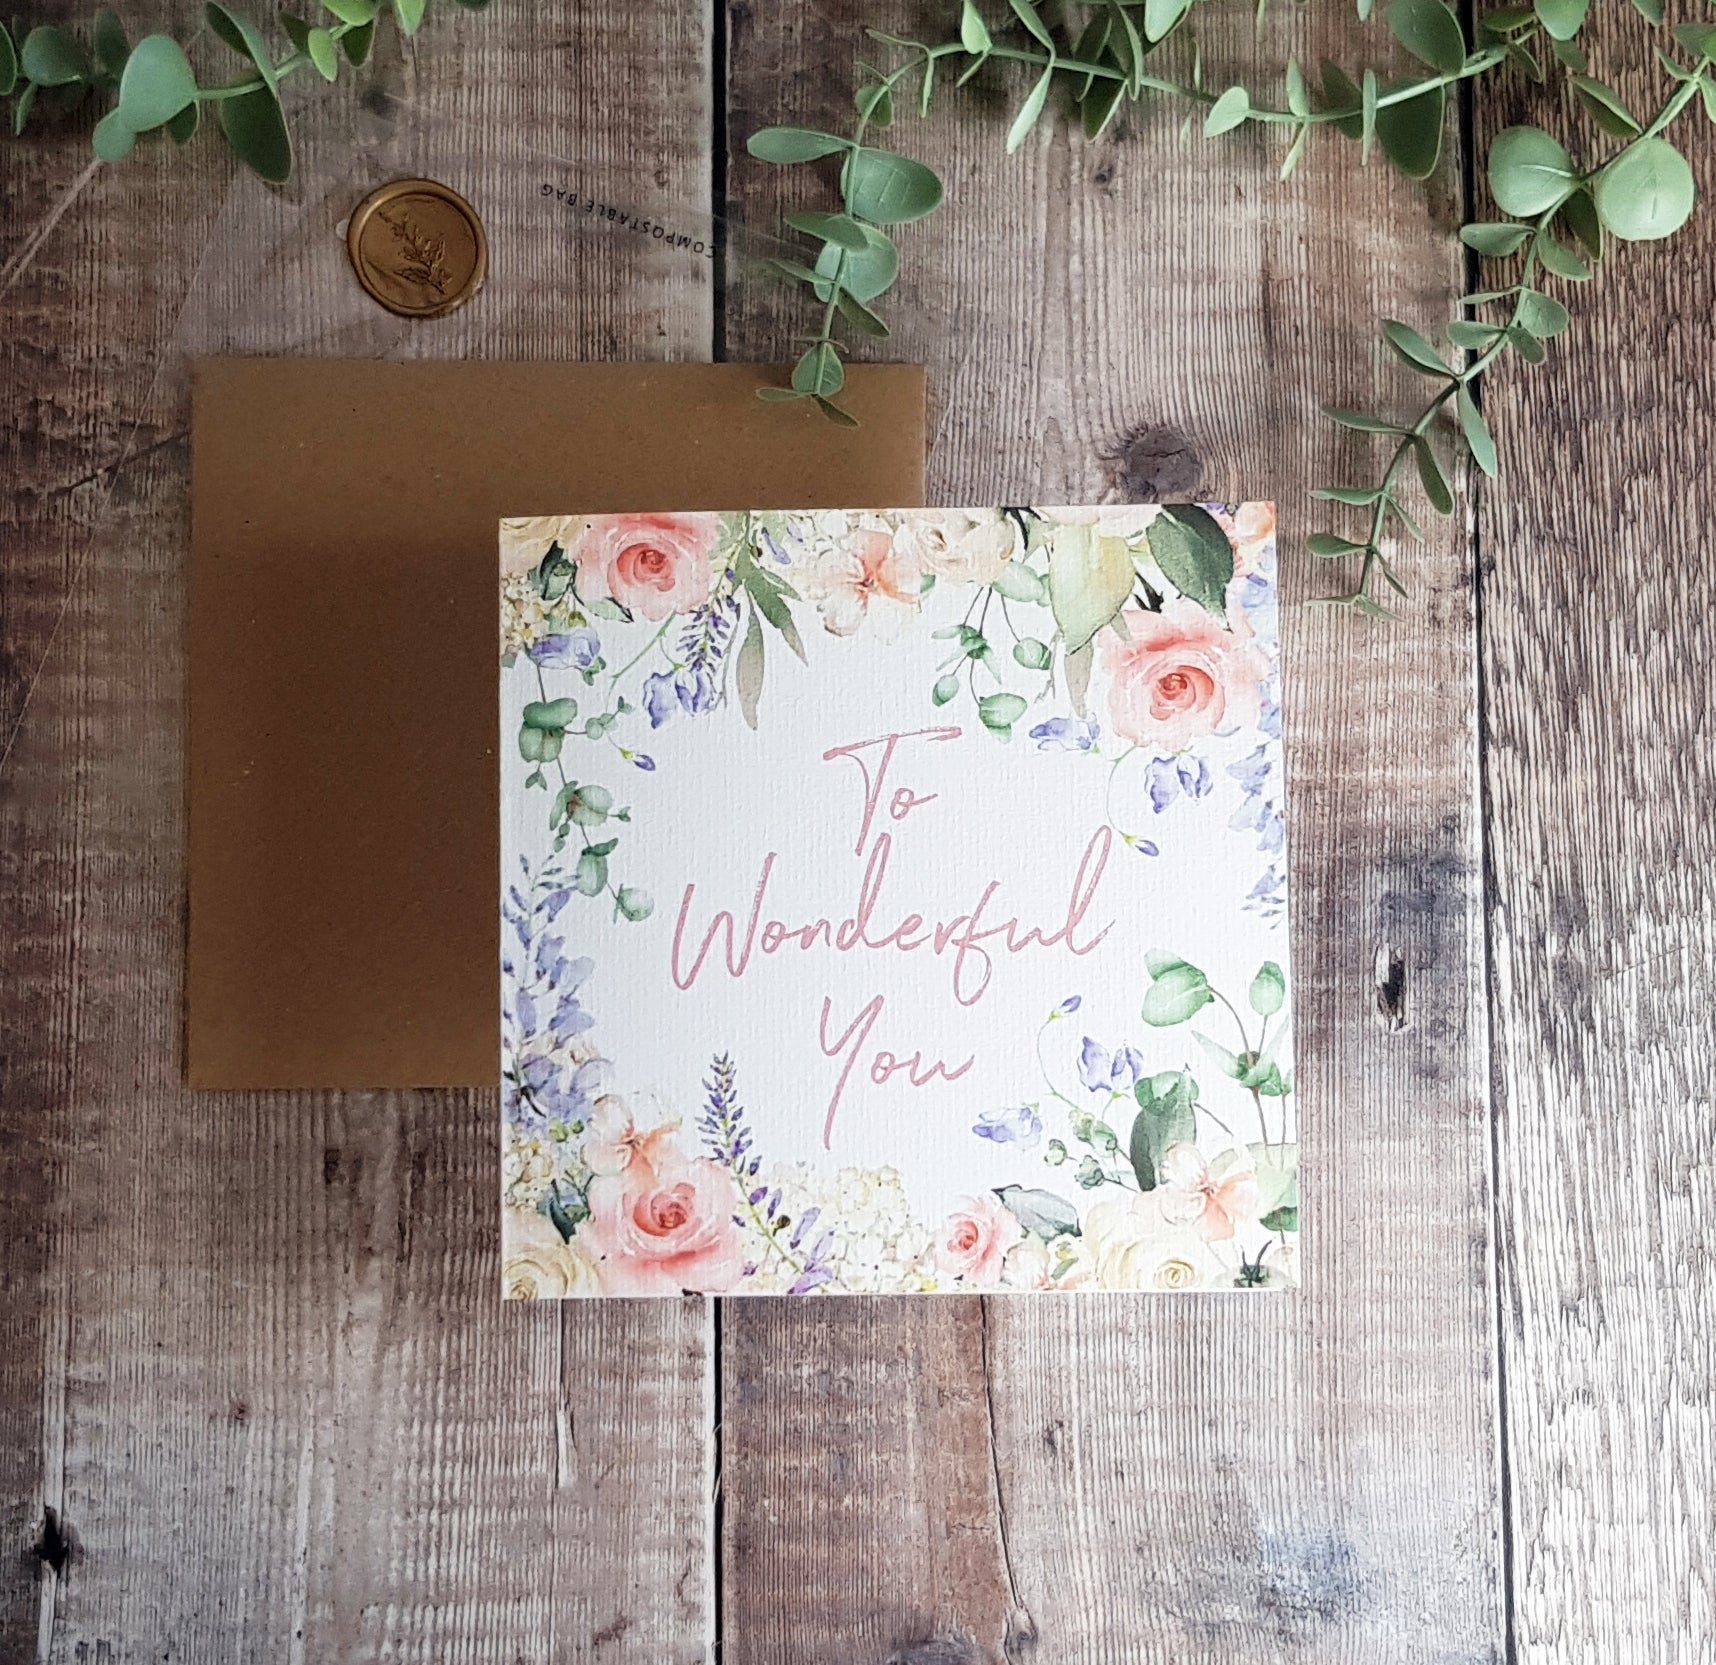 'To Wonderful You' Greetings Card